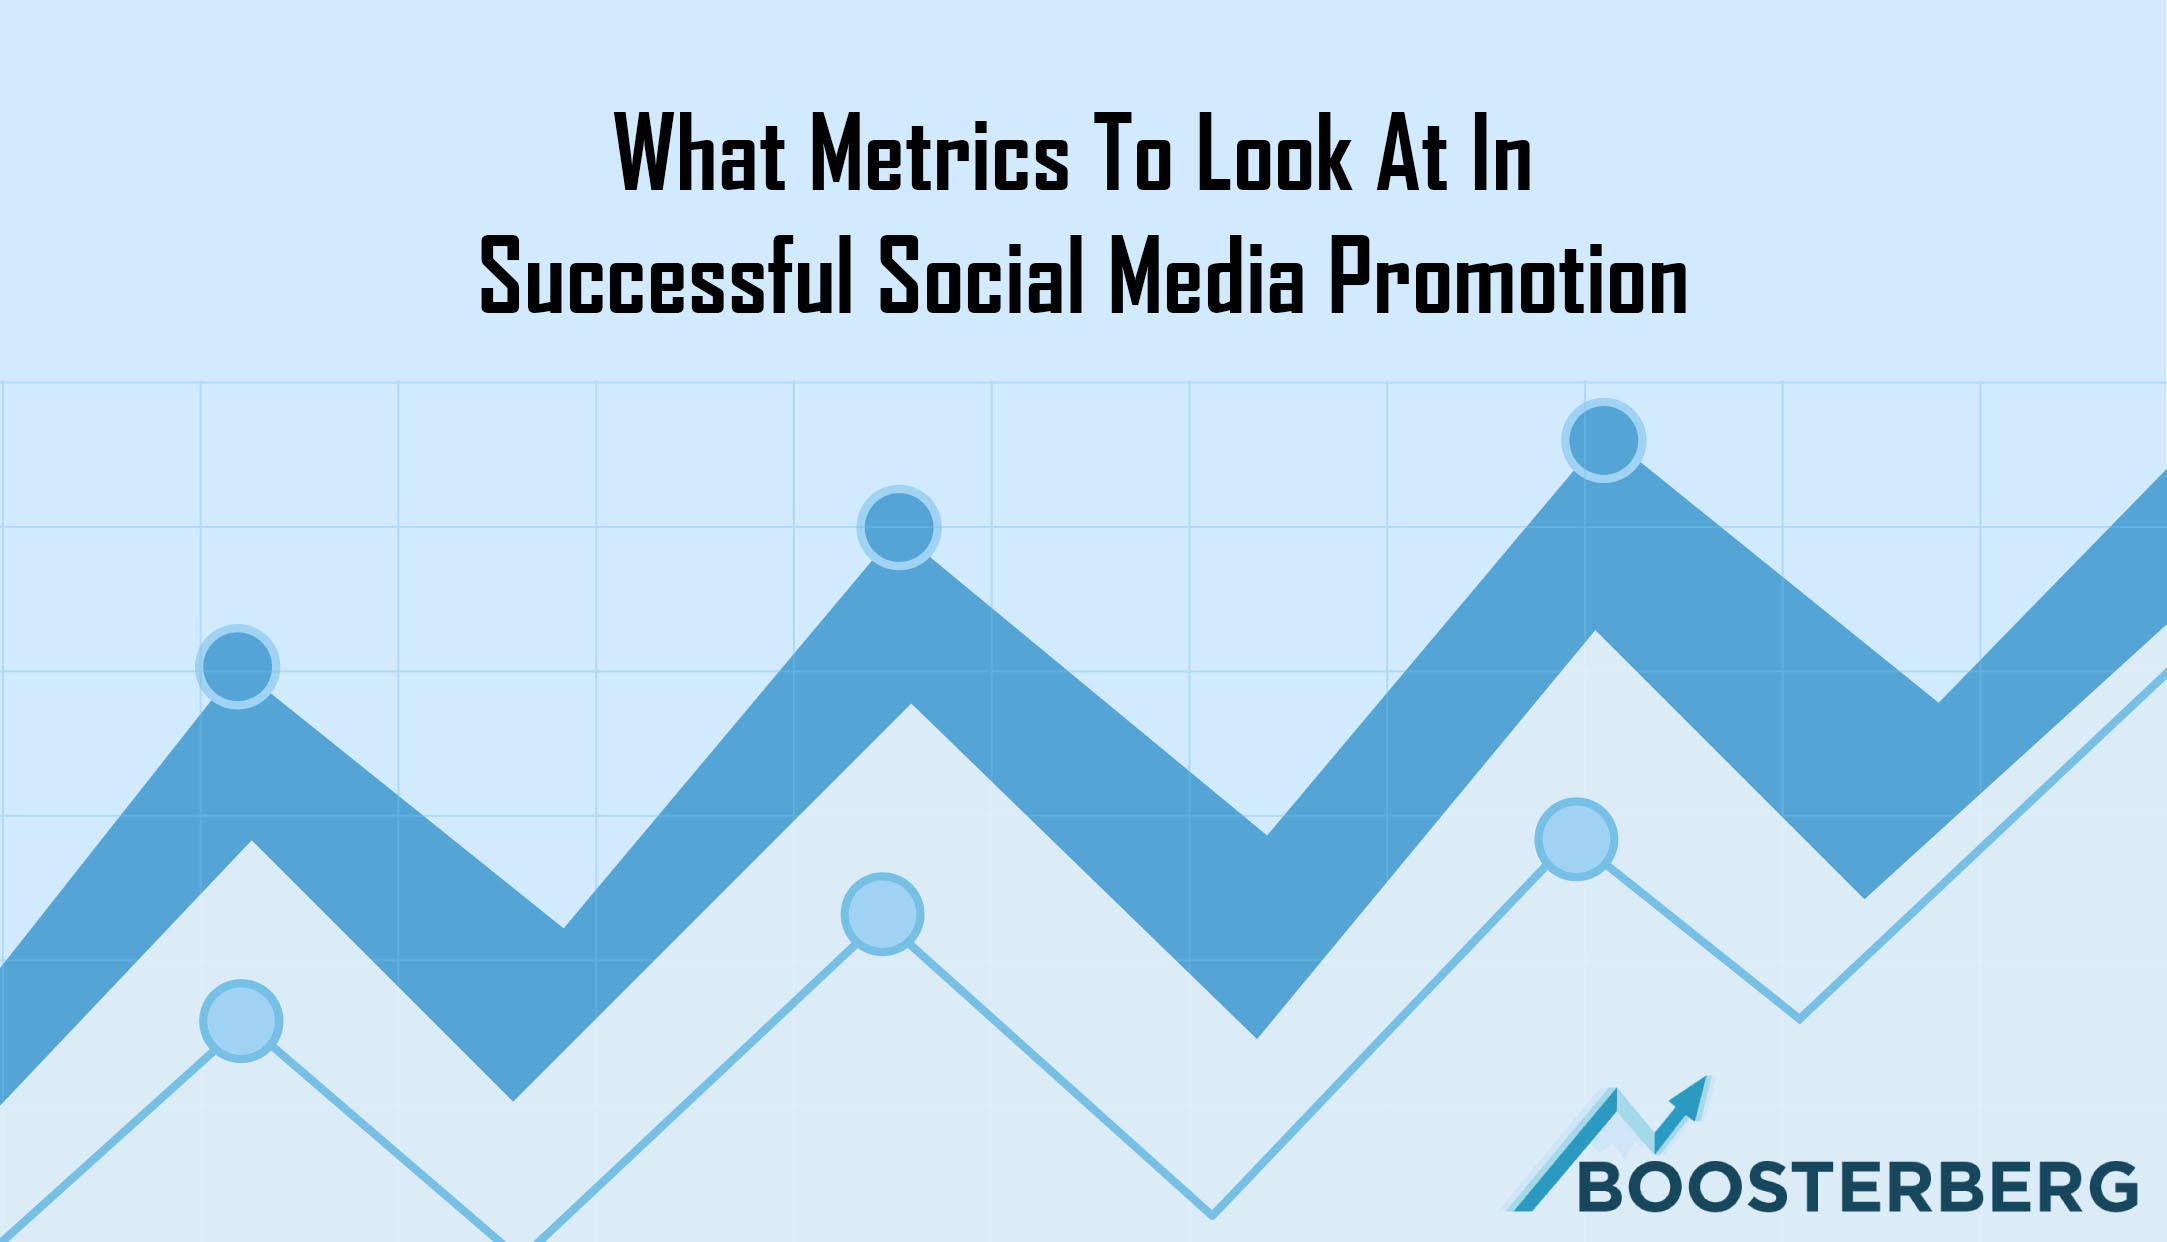 What Metrics To Look At In Successful Social Media Promotion